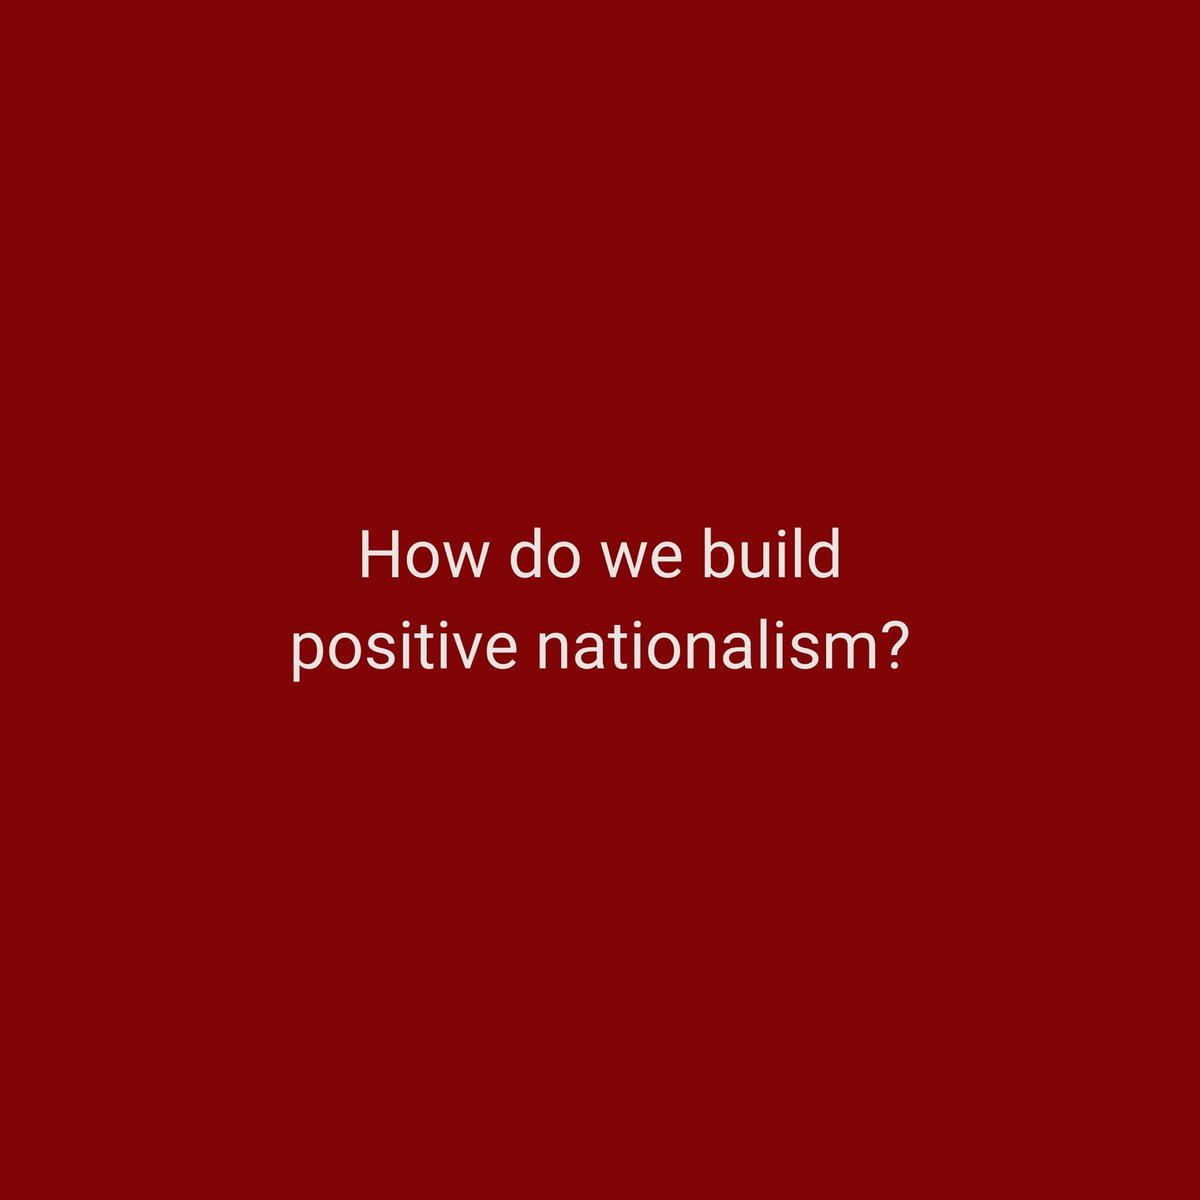 How do we build positive nationalism? #ThoughtSeries Part (2)  #GovernanceMatters #positive #nationalism #global #unity #deepthoughts https://t.co/zKiyuC8Ti9 https://t.co/pmBvic8Goq